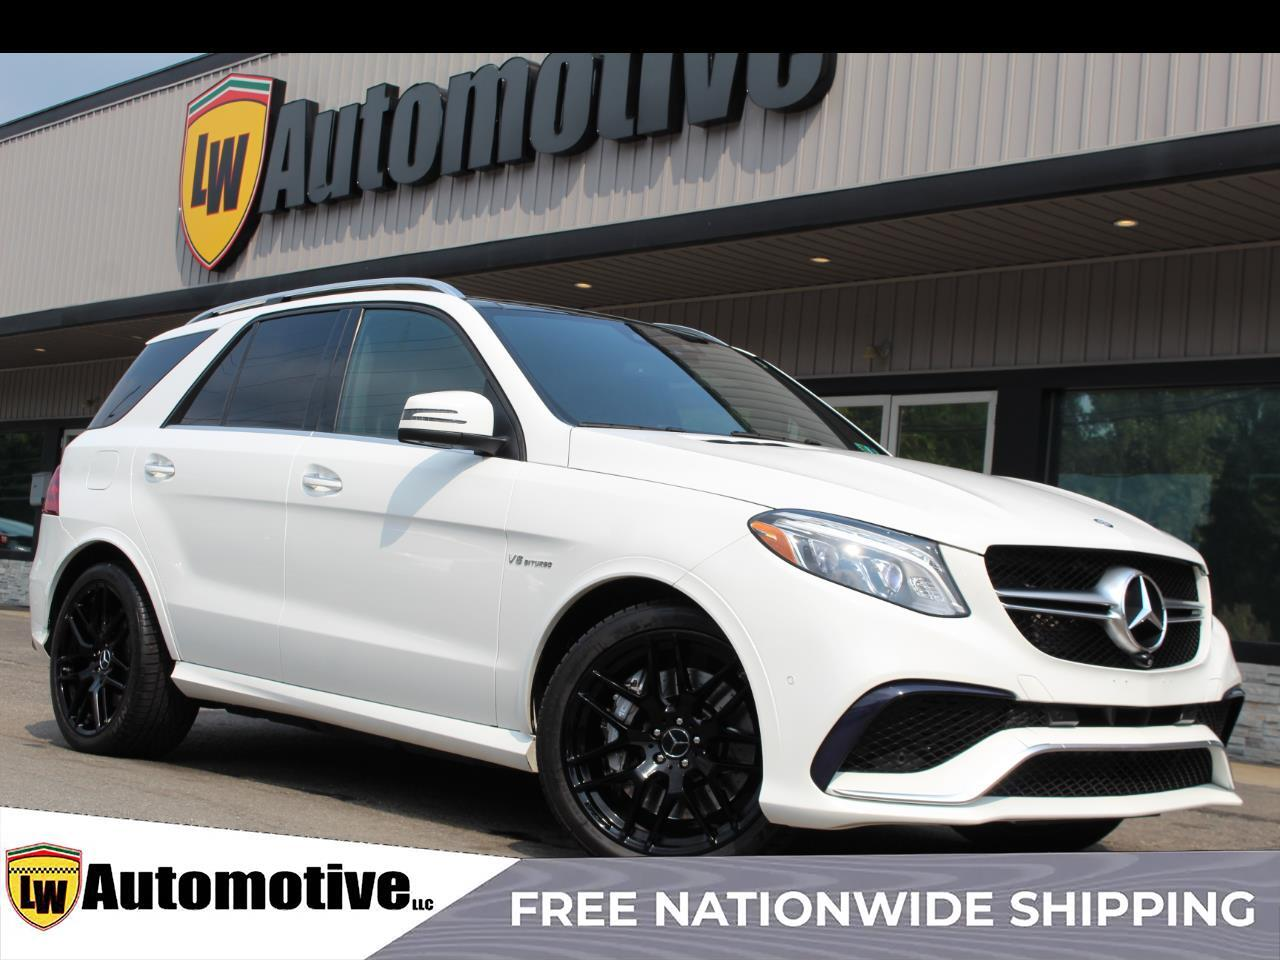 2016 Mercedes-Benz GLE 4MATIC 4dr AMG GLE 63